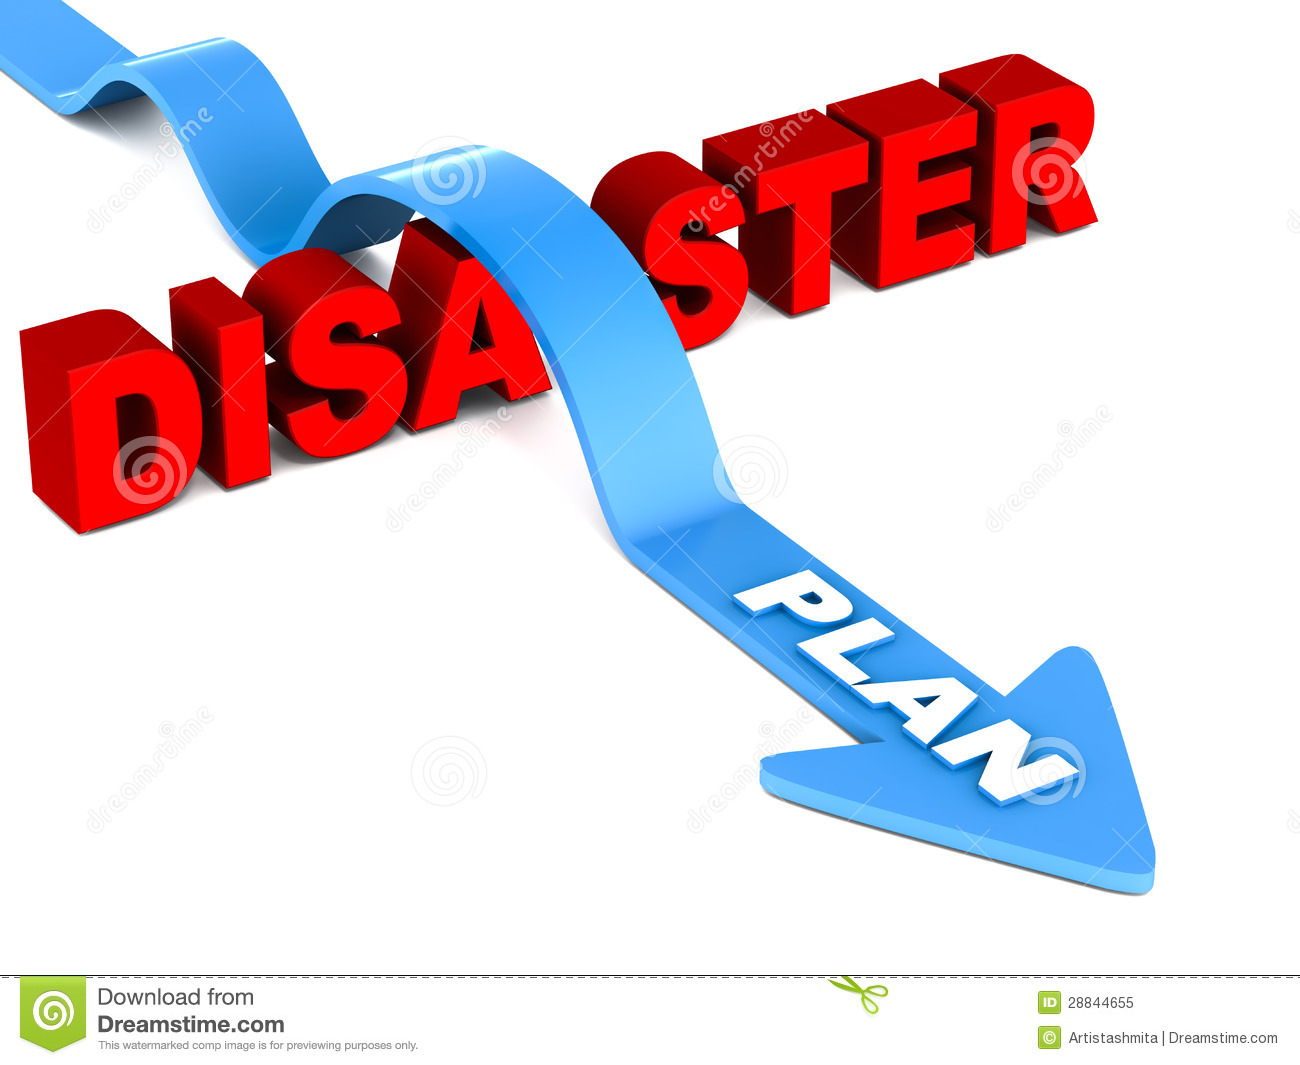 Disaster clipart images.